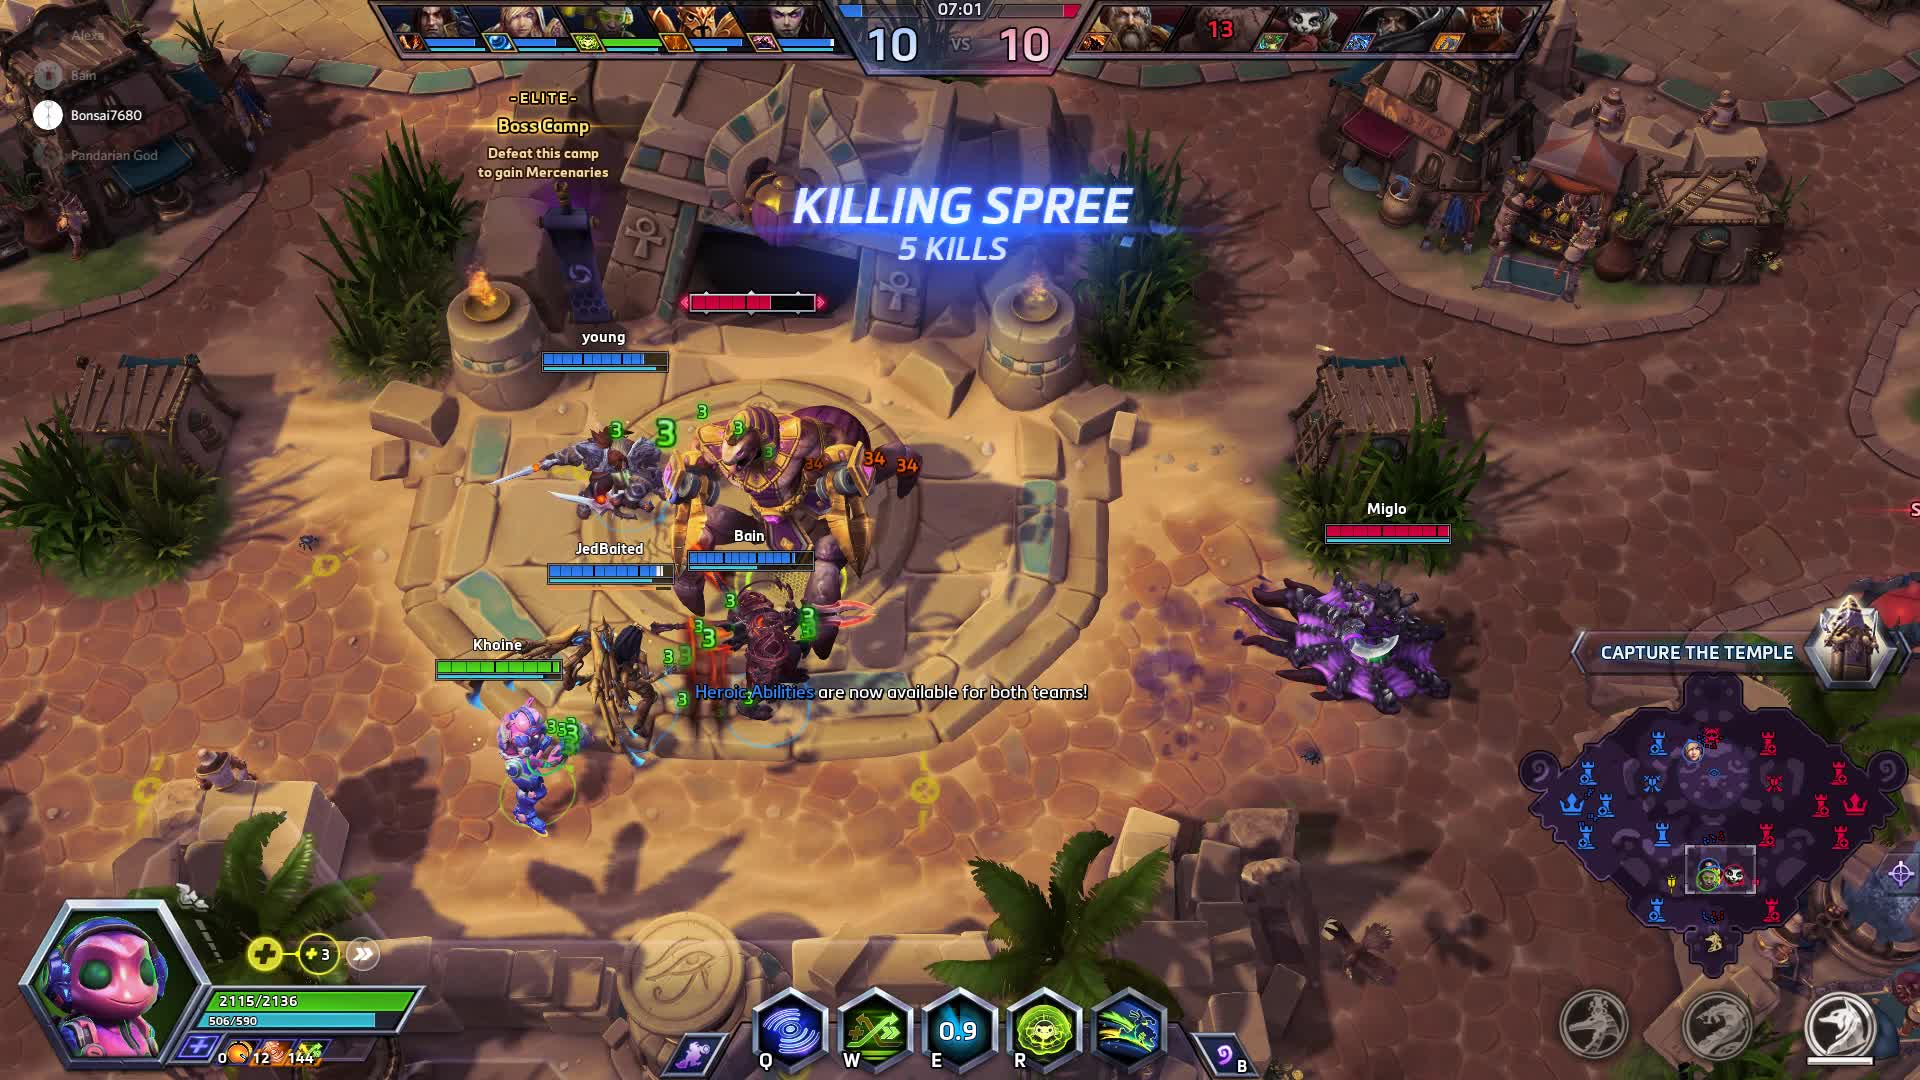 heroesofthestorm, Heroes of the Storm 2019.03.13 - 21.25.17.03.DVR GIFs